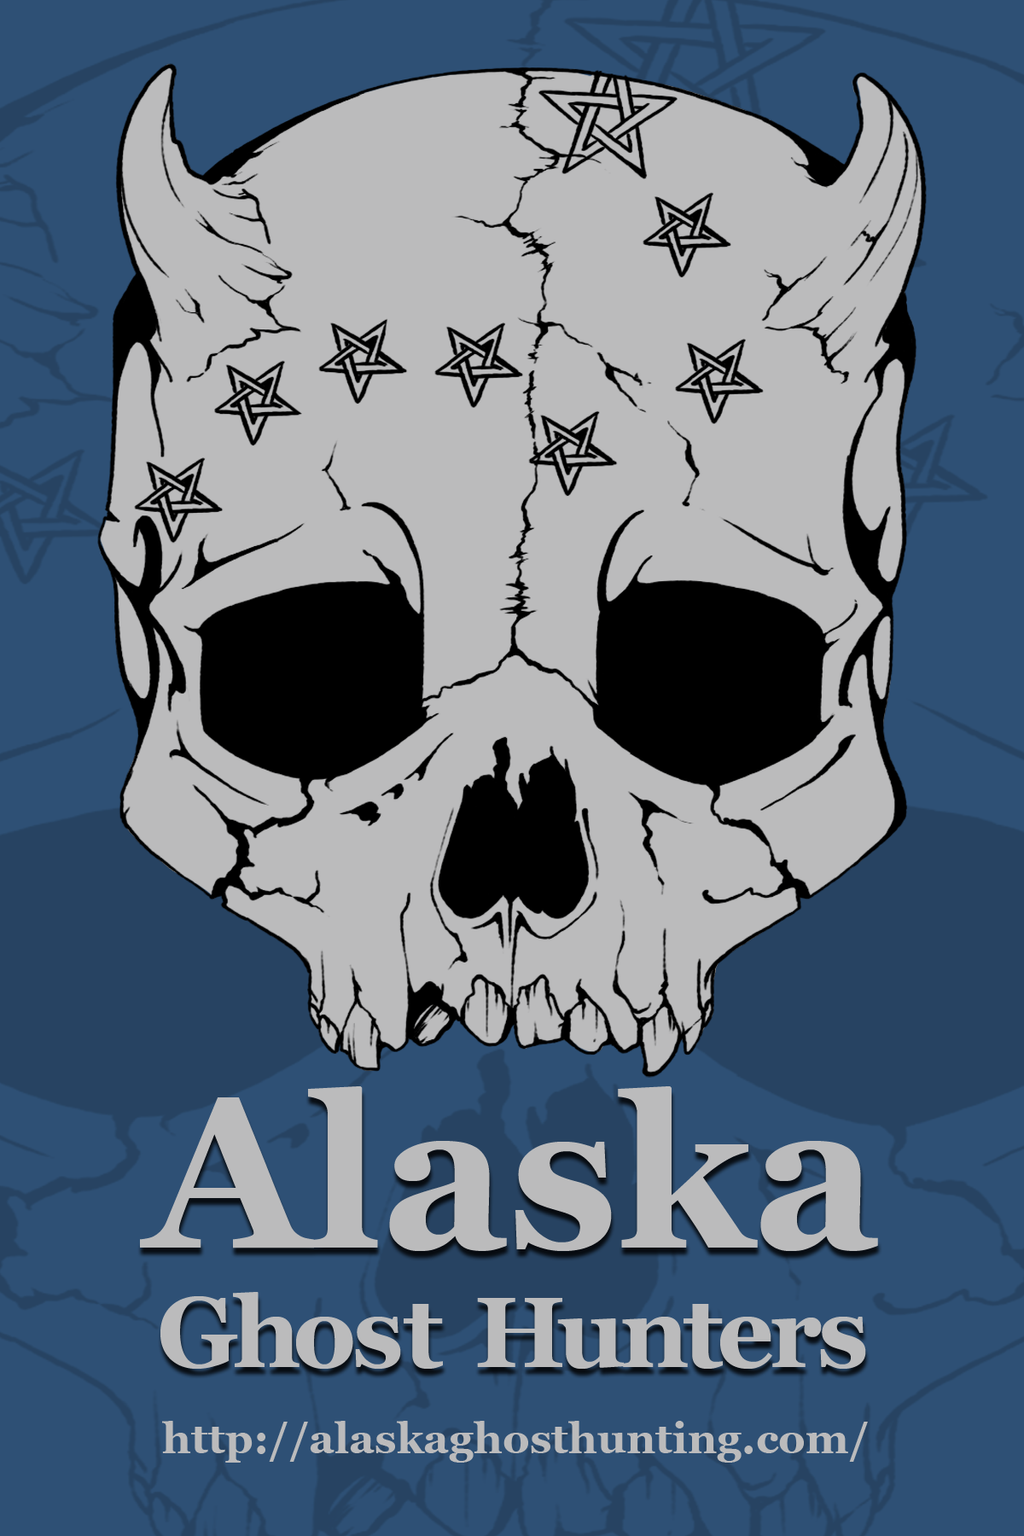 Alaska Ghost Hunters by ElysianImagery